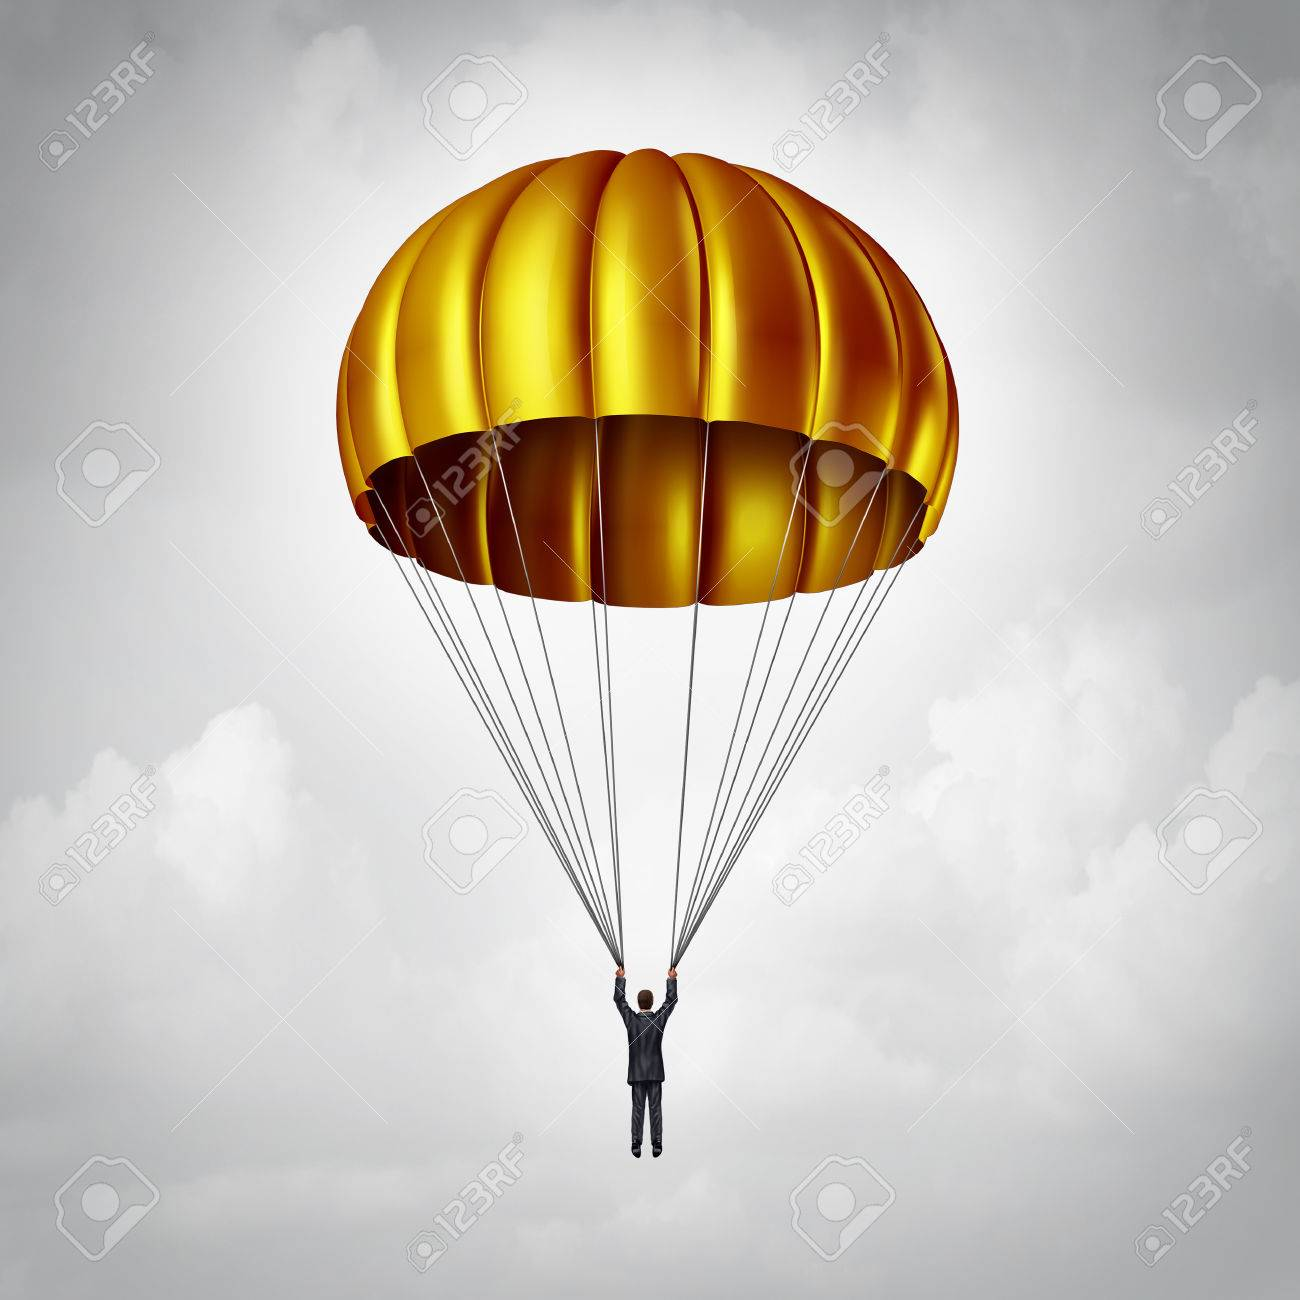 Golden parachute concept as a businessman parachuting safely down with a gold landing gear as a business benefits and award symbol for a company agreement with an executive employee that is stepping down or resigning. Stock Photo - 54085804